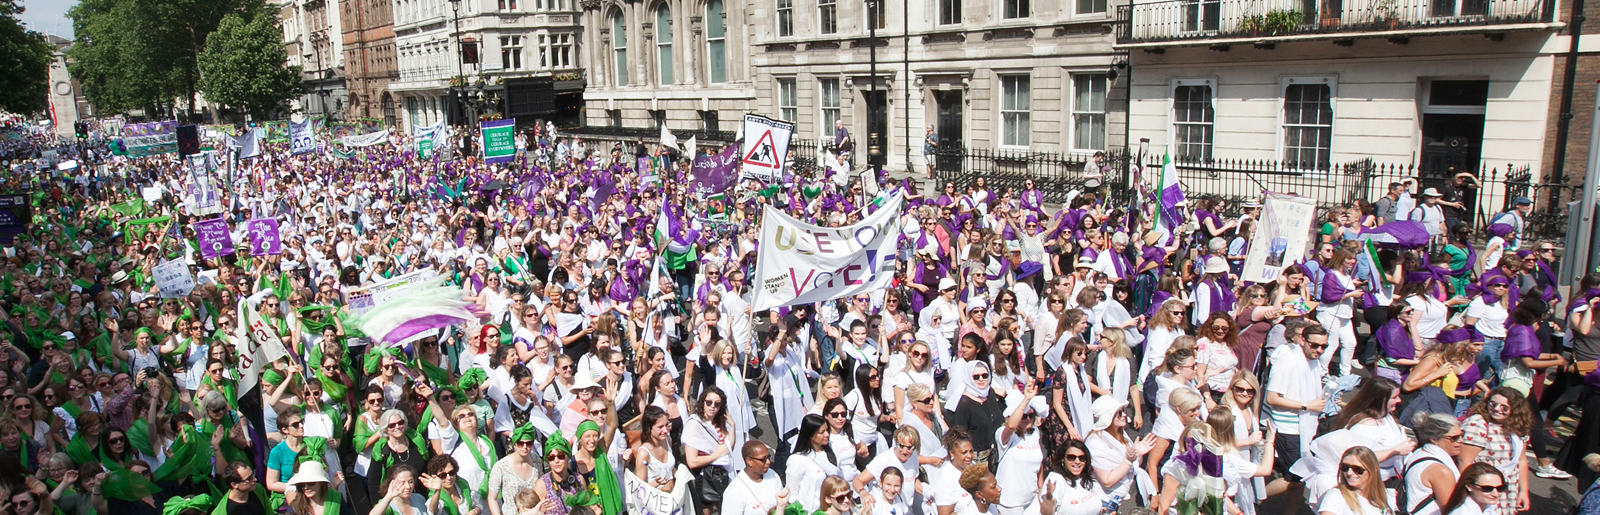 Crowd of women dressed in purple, white and green holding up banners